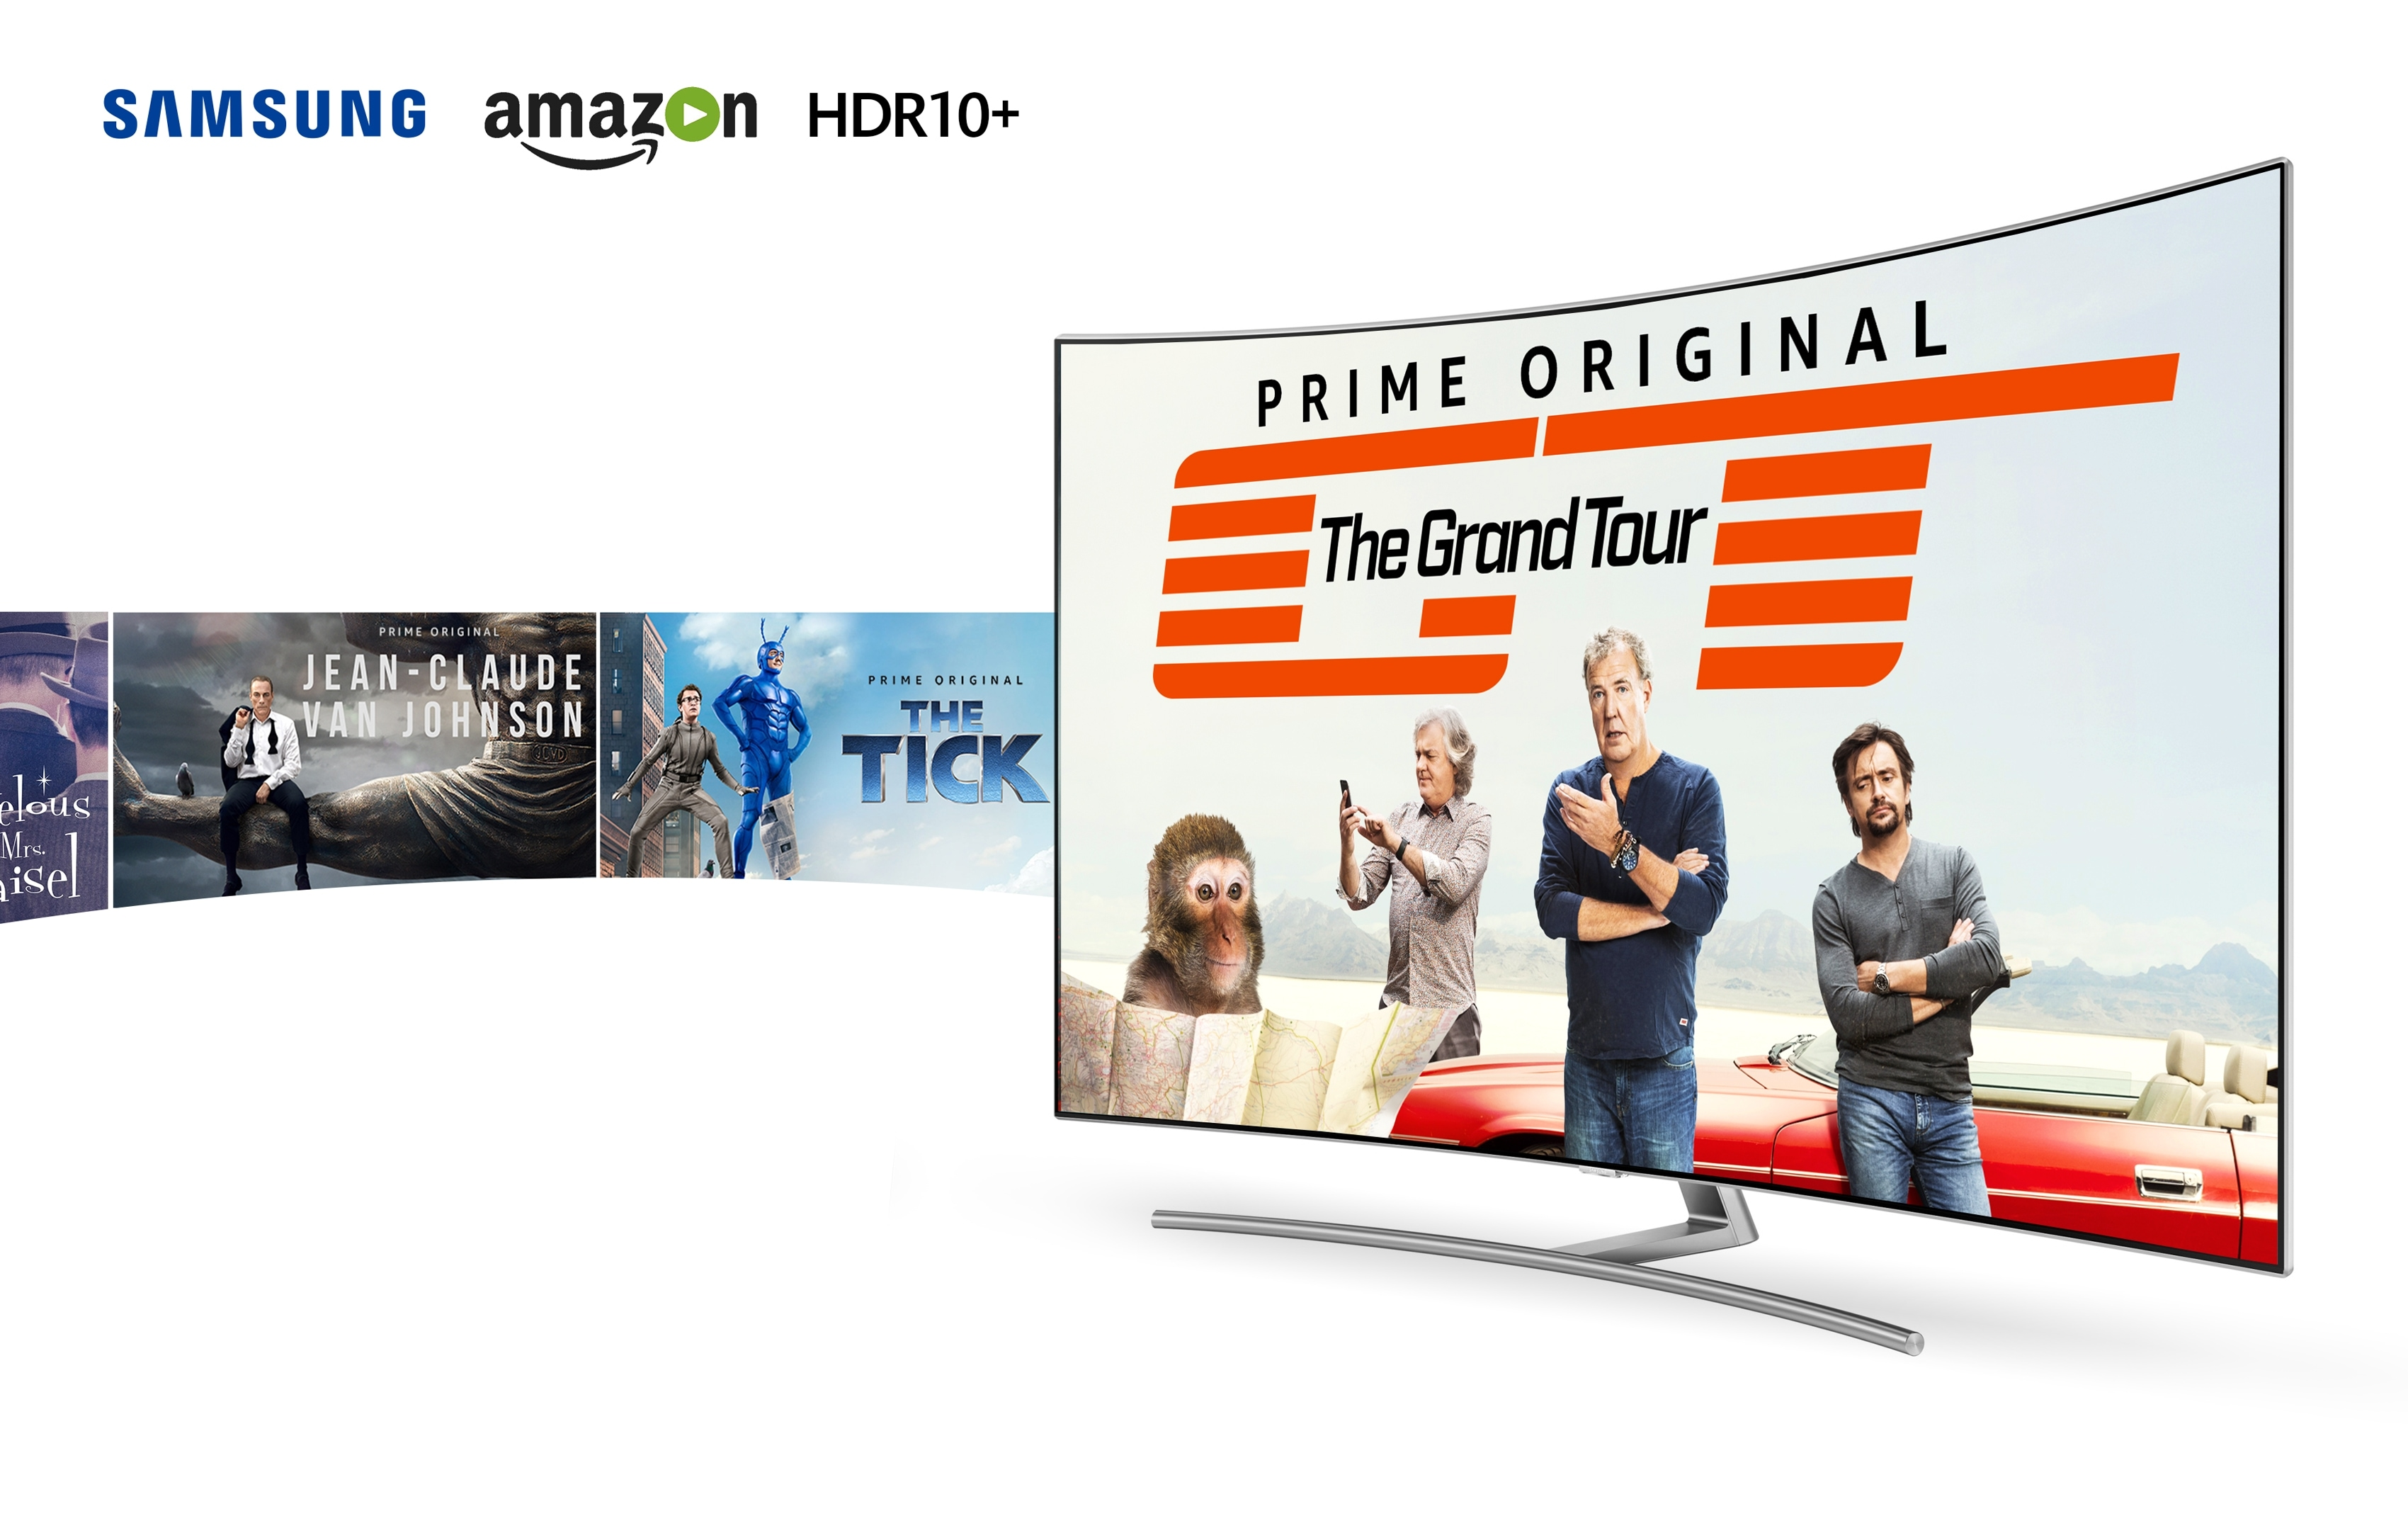 Samsung in Amazon Prime video